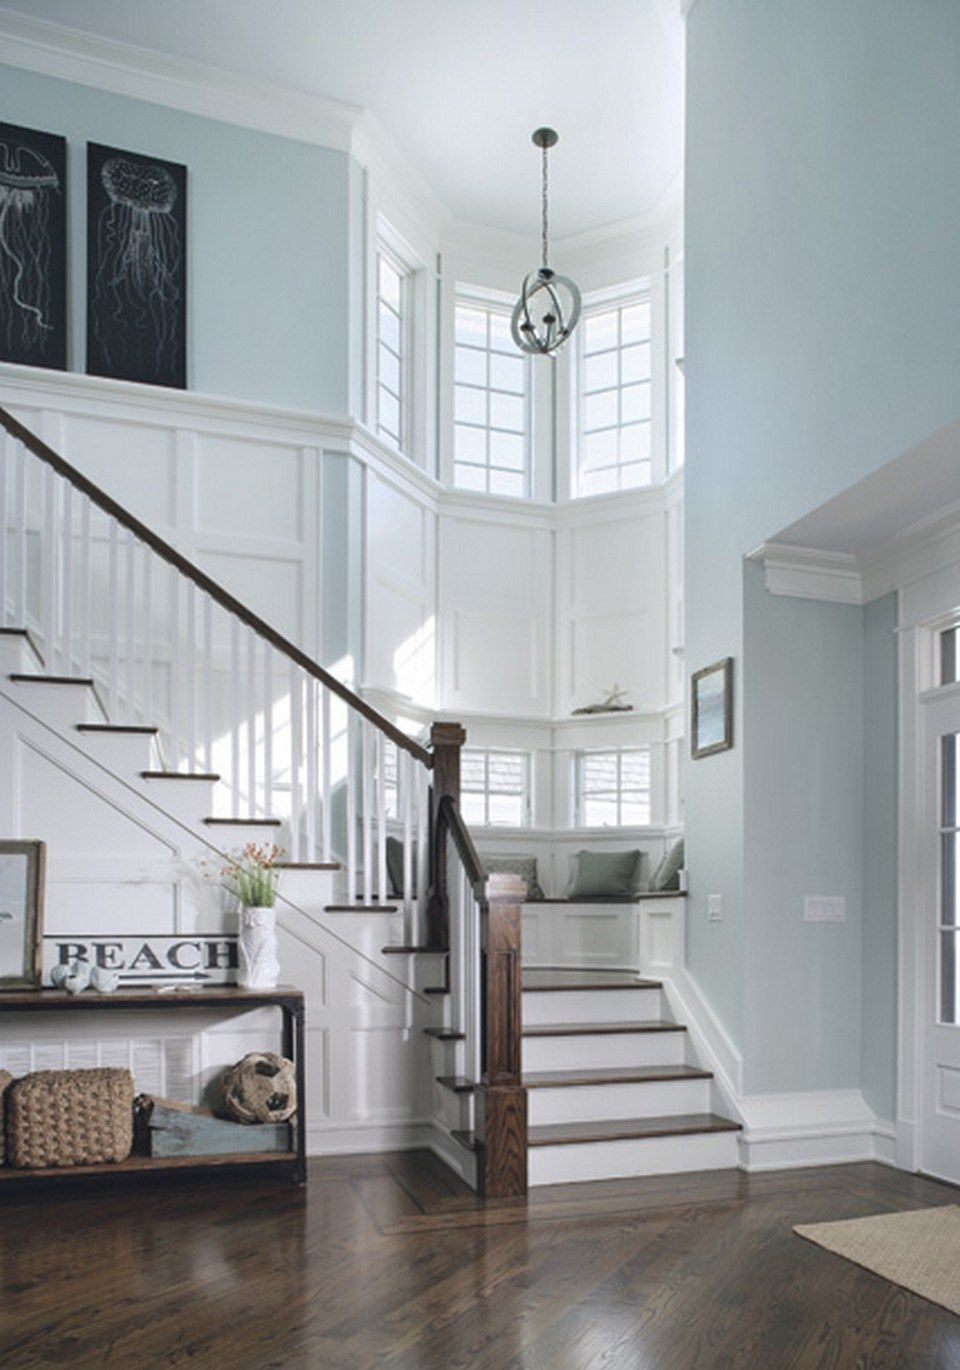 Follow for more popping pins pinterest : @princessk | ~ future home ...